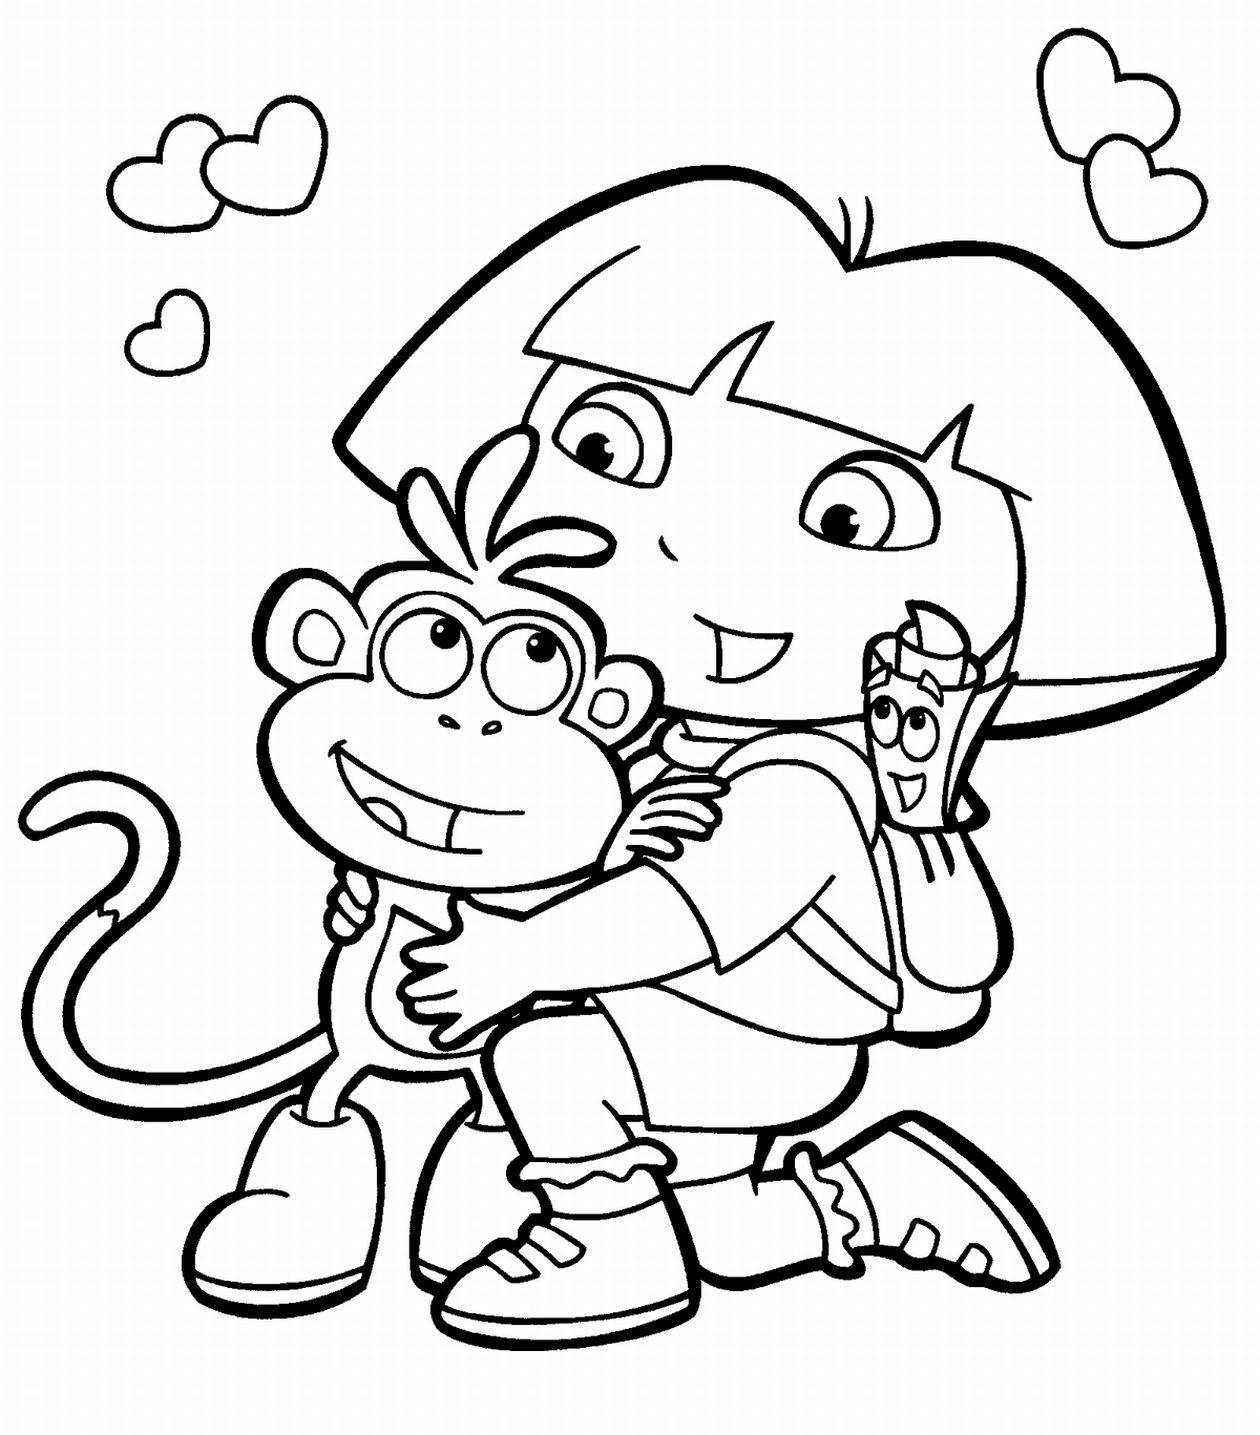 k coloring pages for kids - photo #17